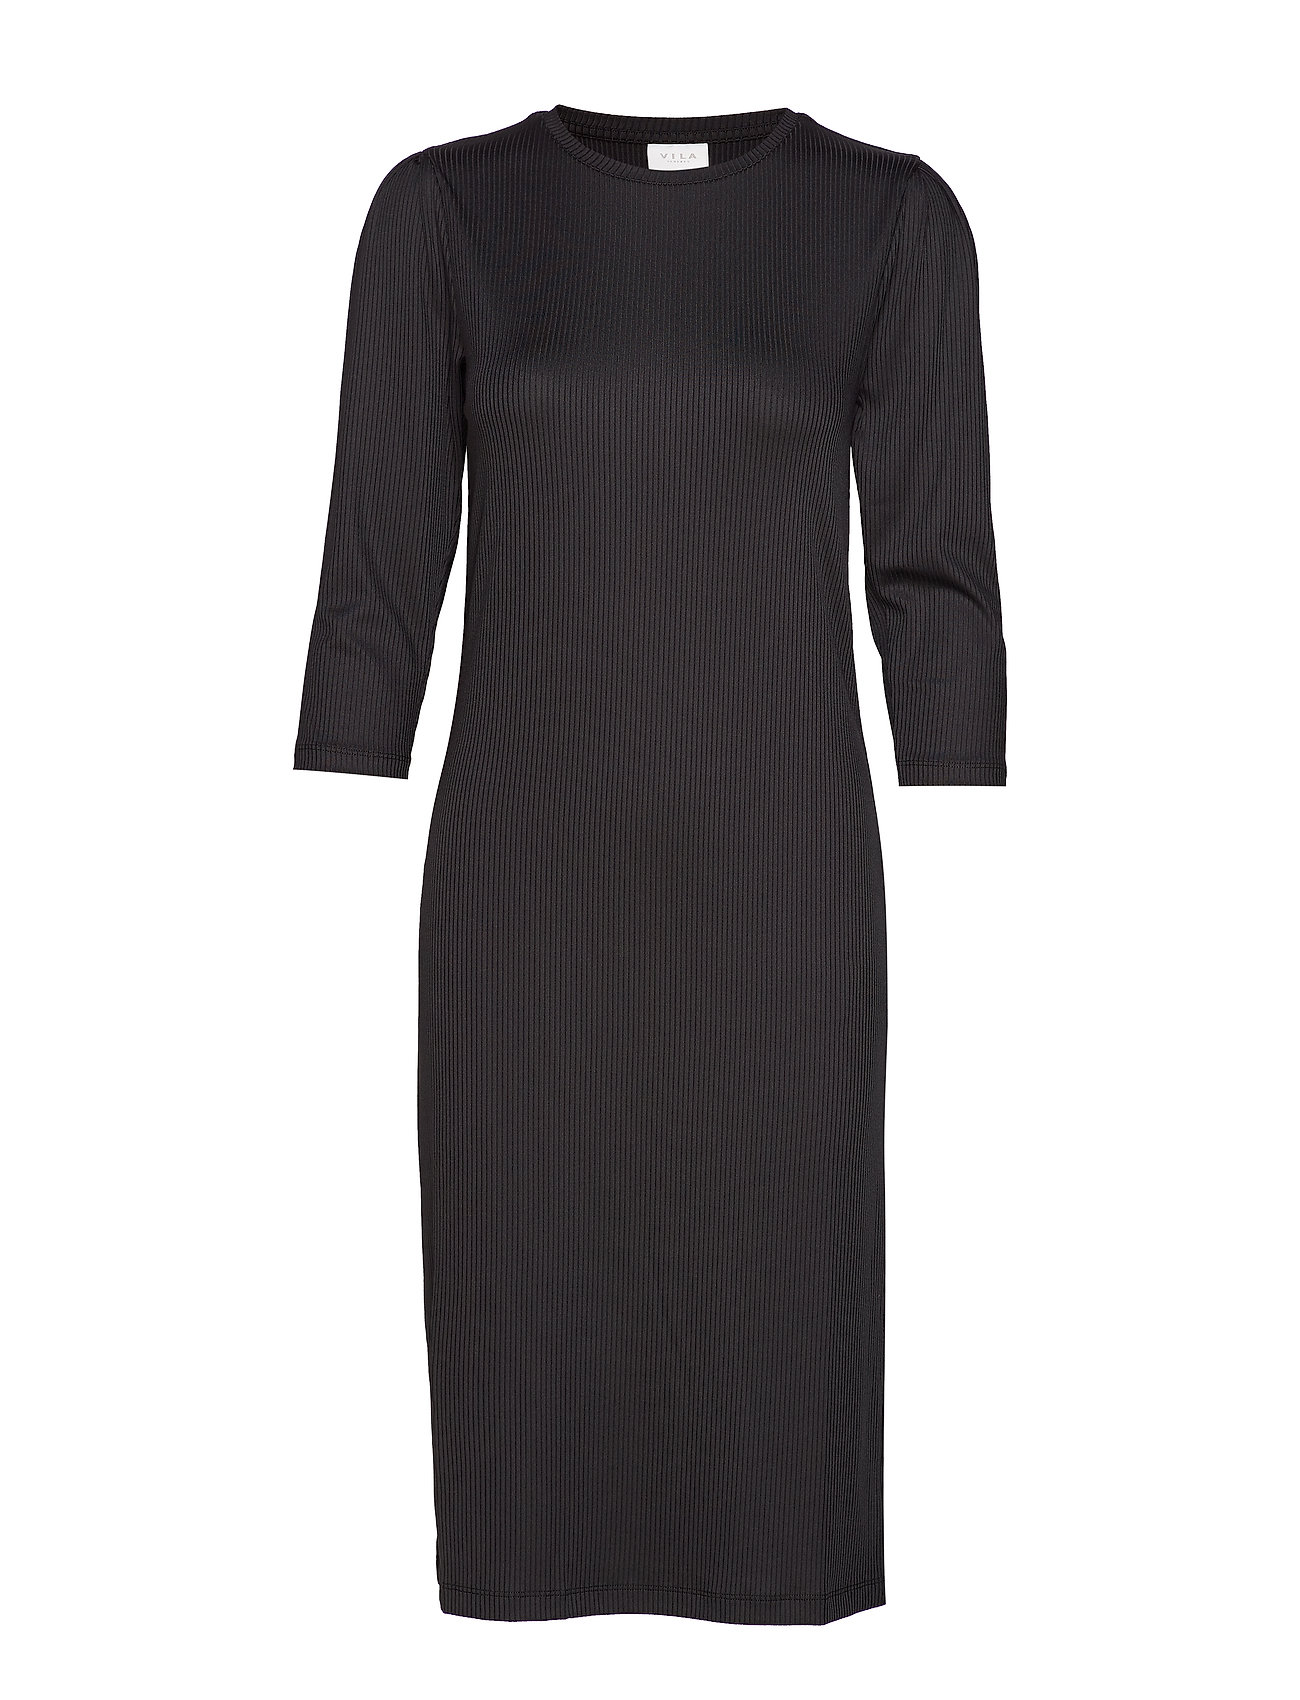 Vila VISOFJA DRESS /KA - BLACK